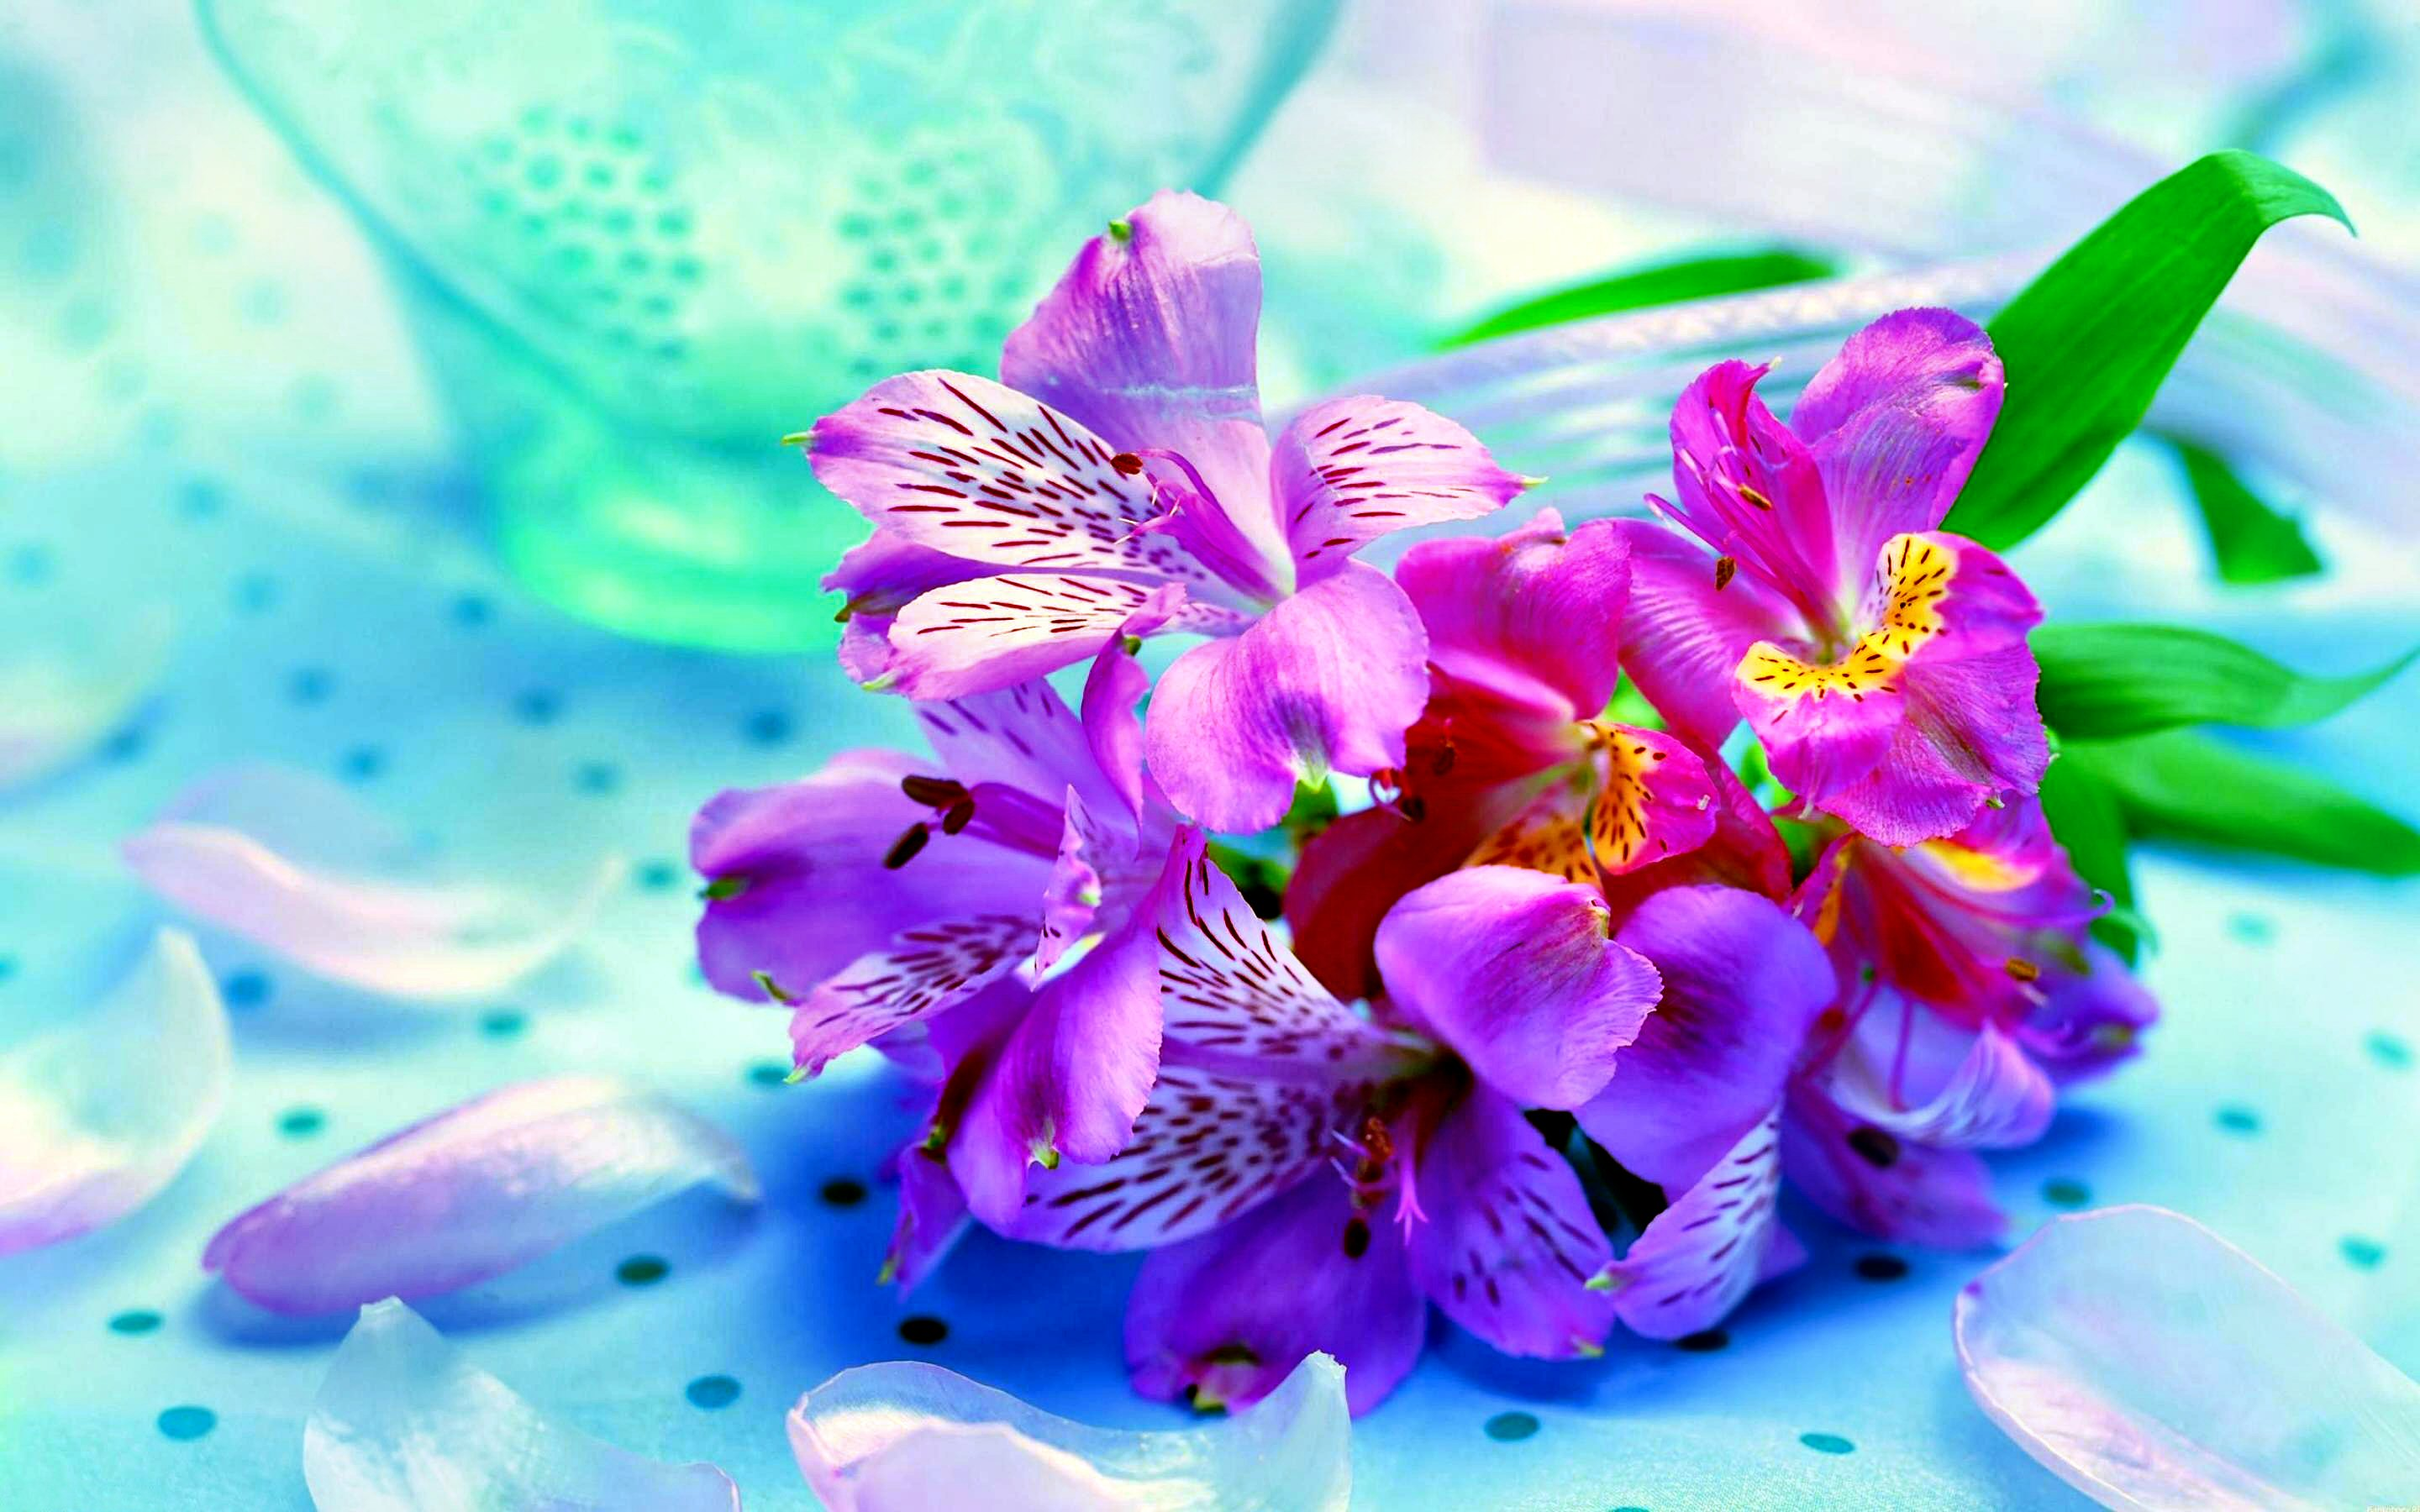 8889 Flower HD Wallpapers | Backgrounds - Wallpaper Abyss